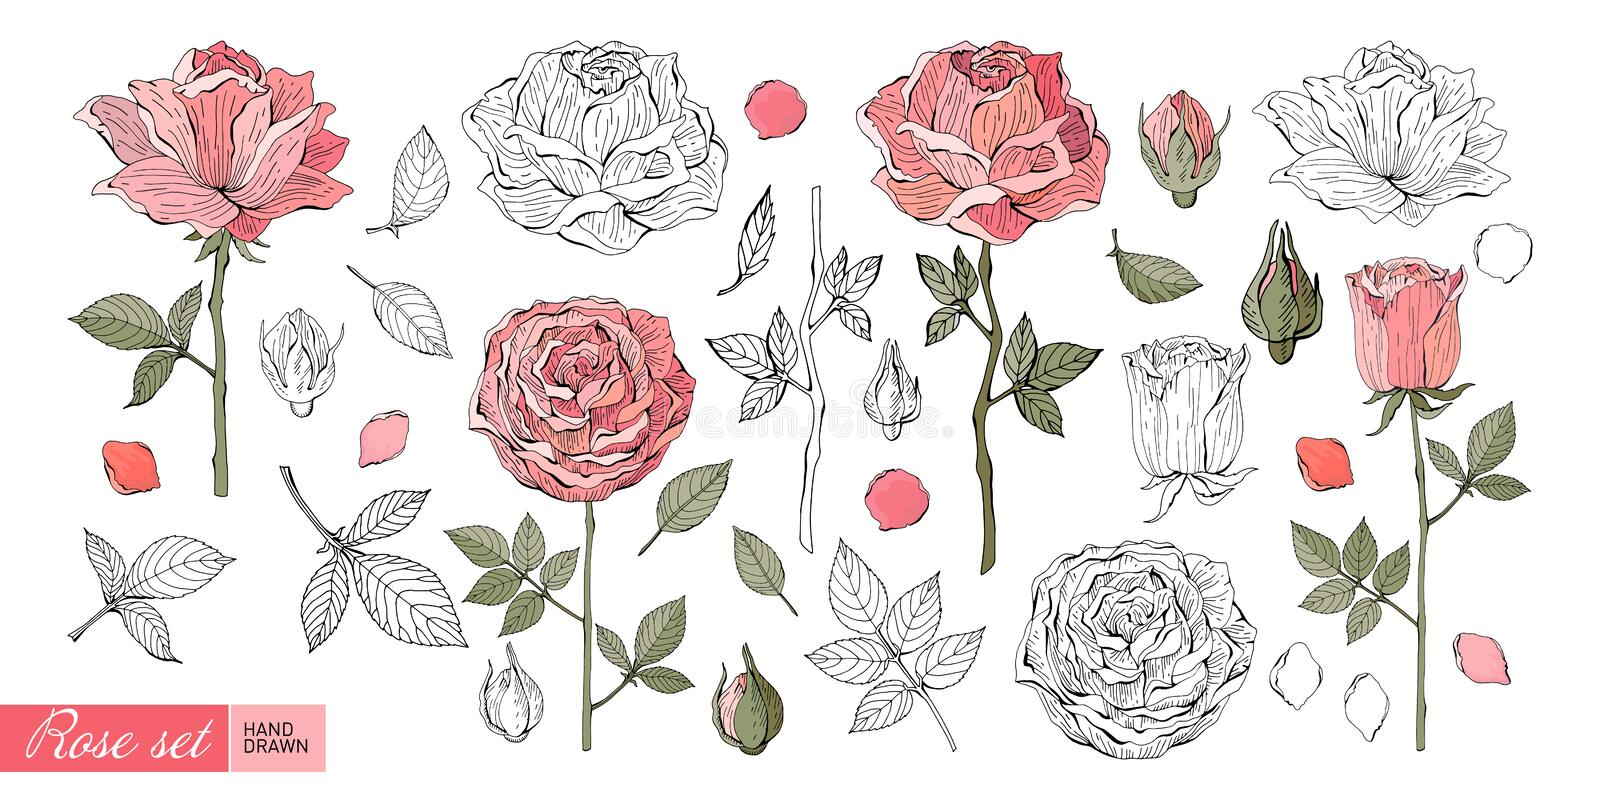 Rose flowers, leaves, stems, buds hand drawn in color and in black and white line. Set of Botanical illustration in vector. Romantic Floral elements. Isolated vector illustration